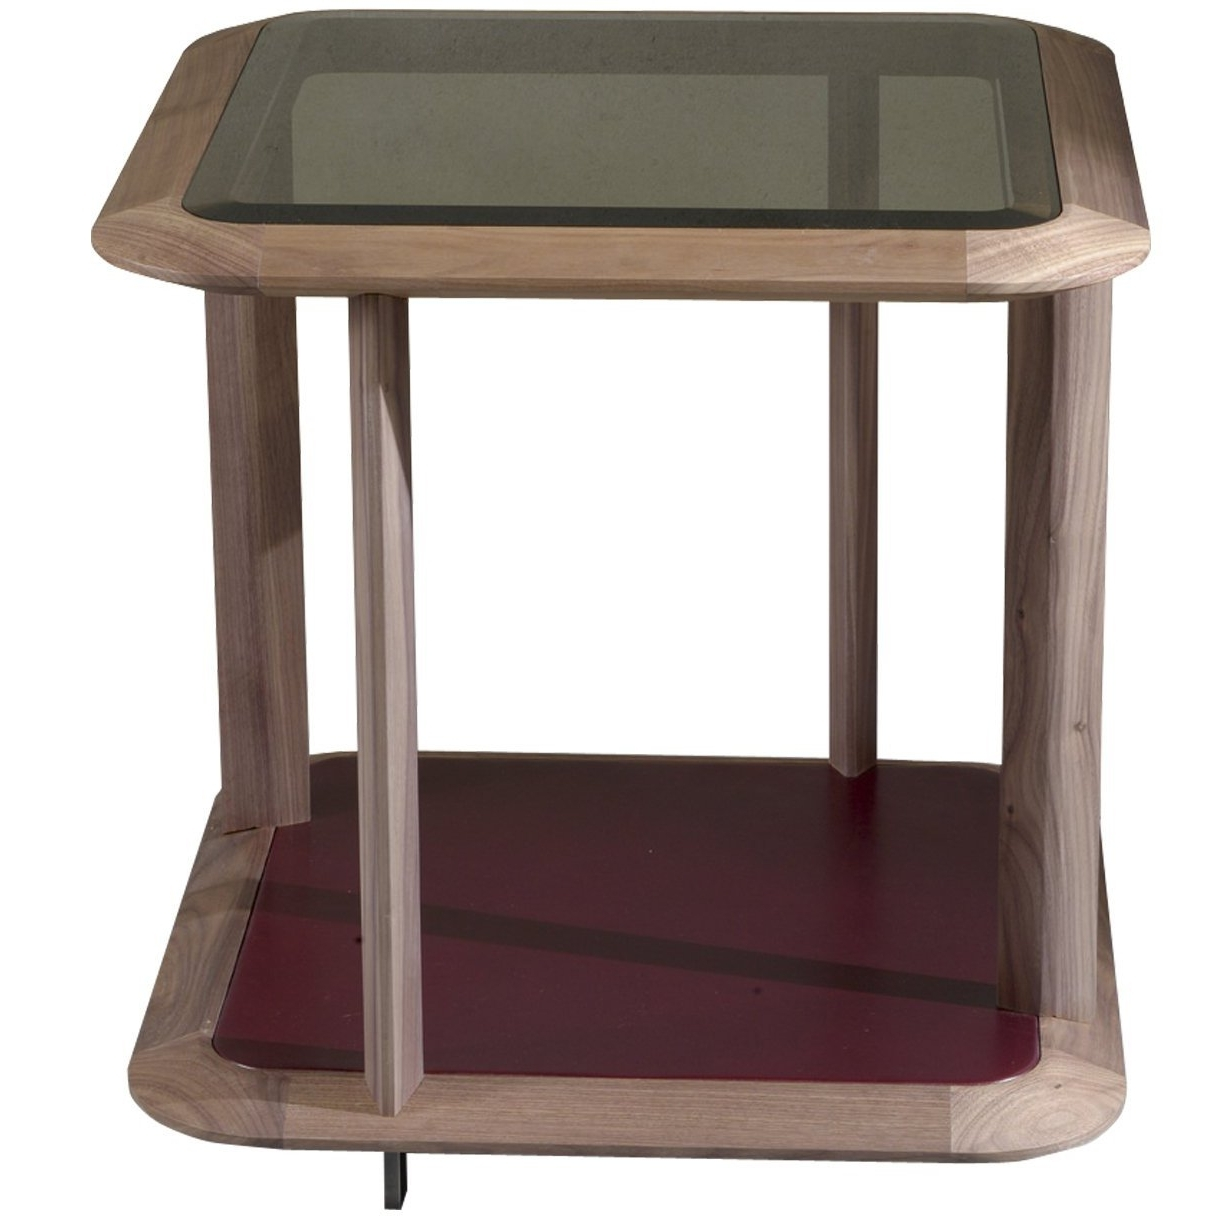 Favorite Adam Coffee Tables With Regard To Adam Coffee Table For Sale At 1stdibs (View 17 of 20)